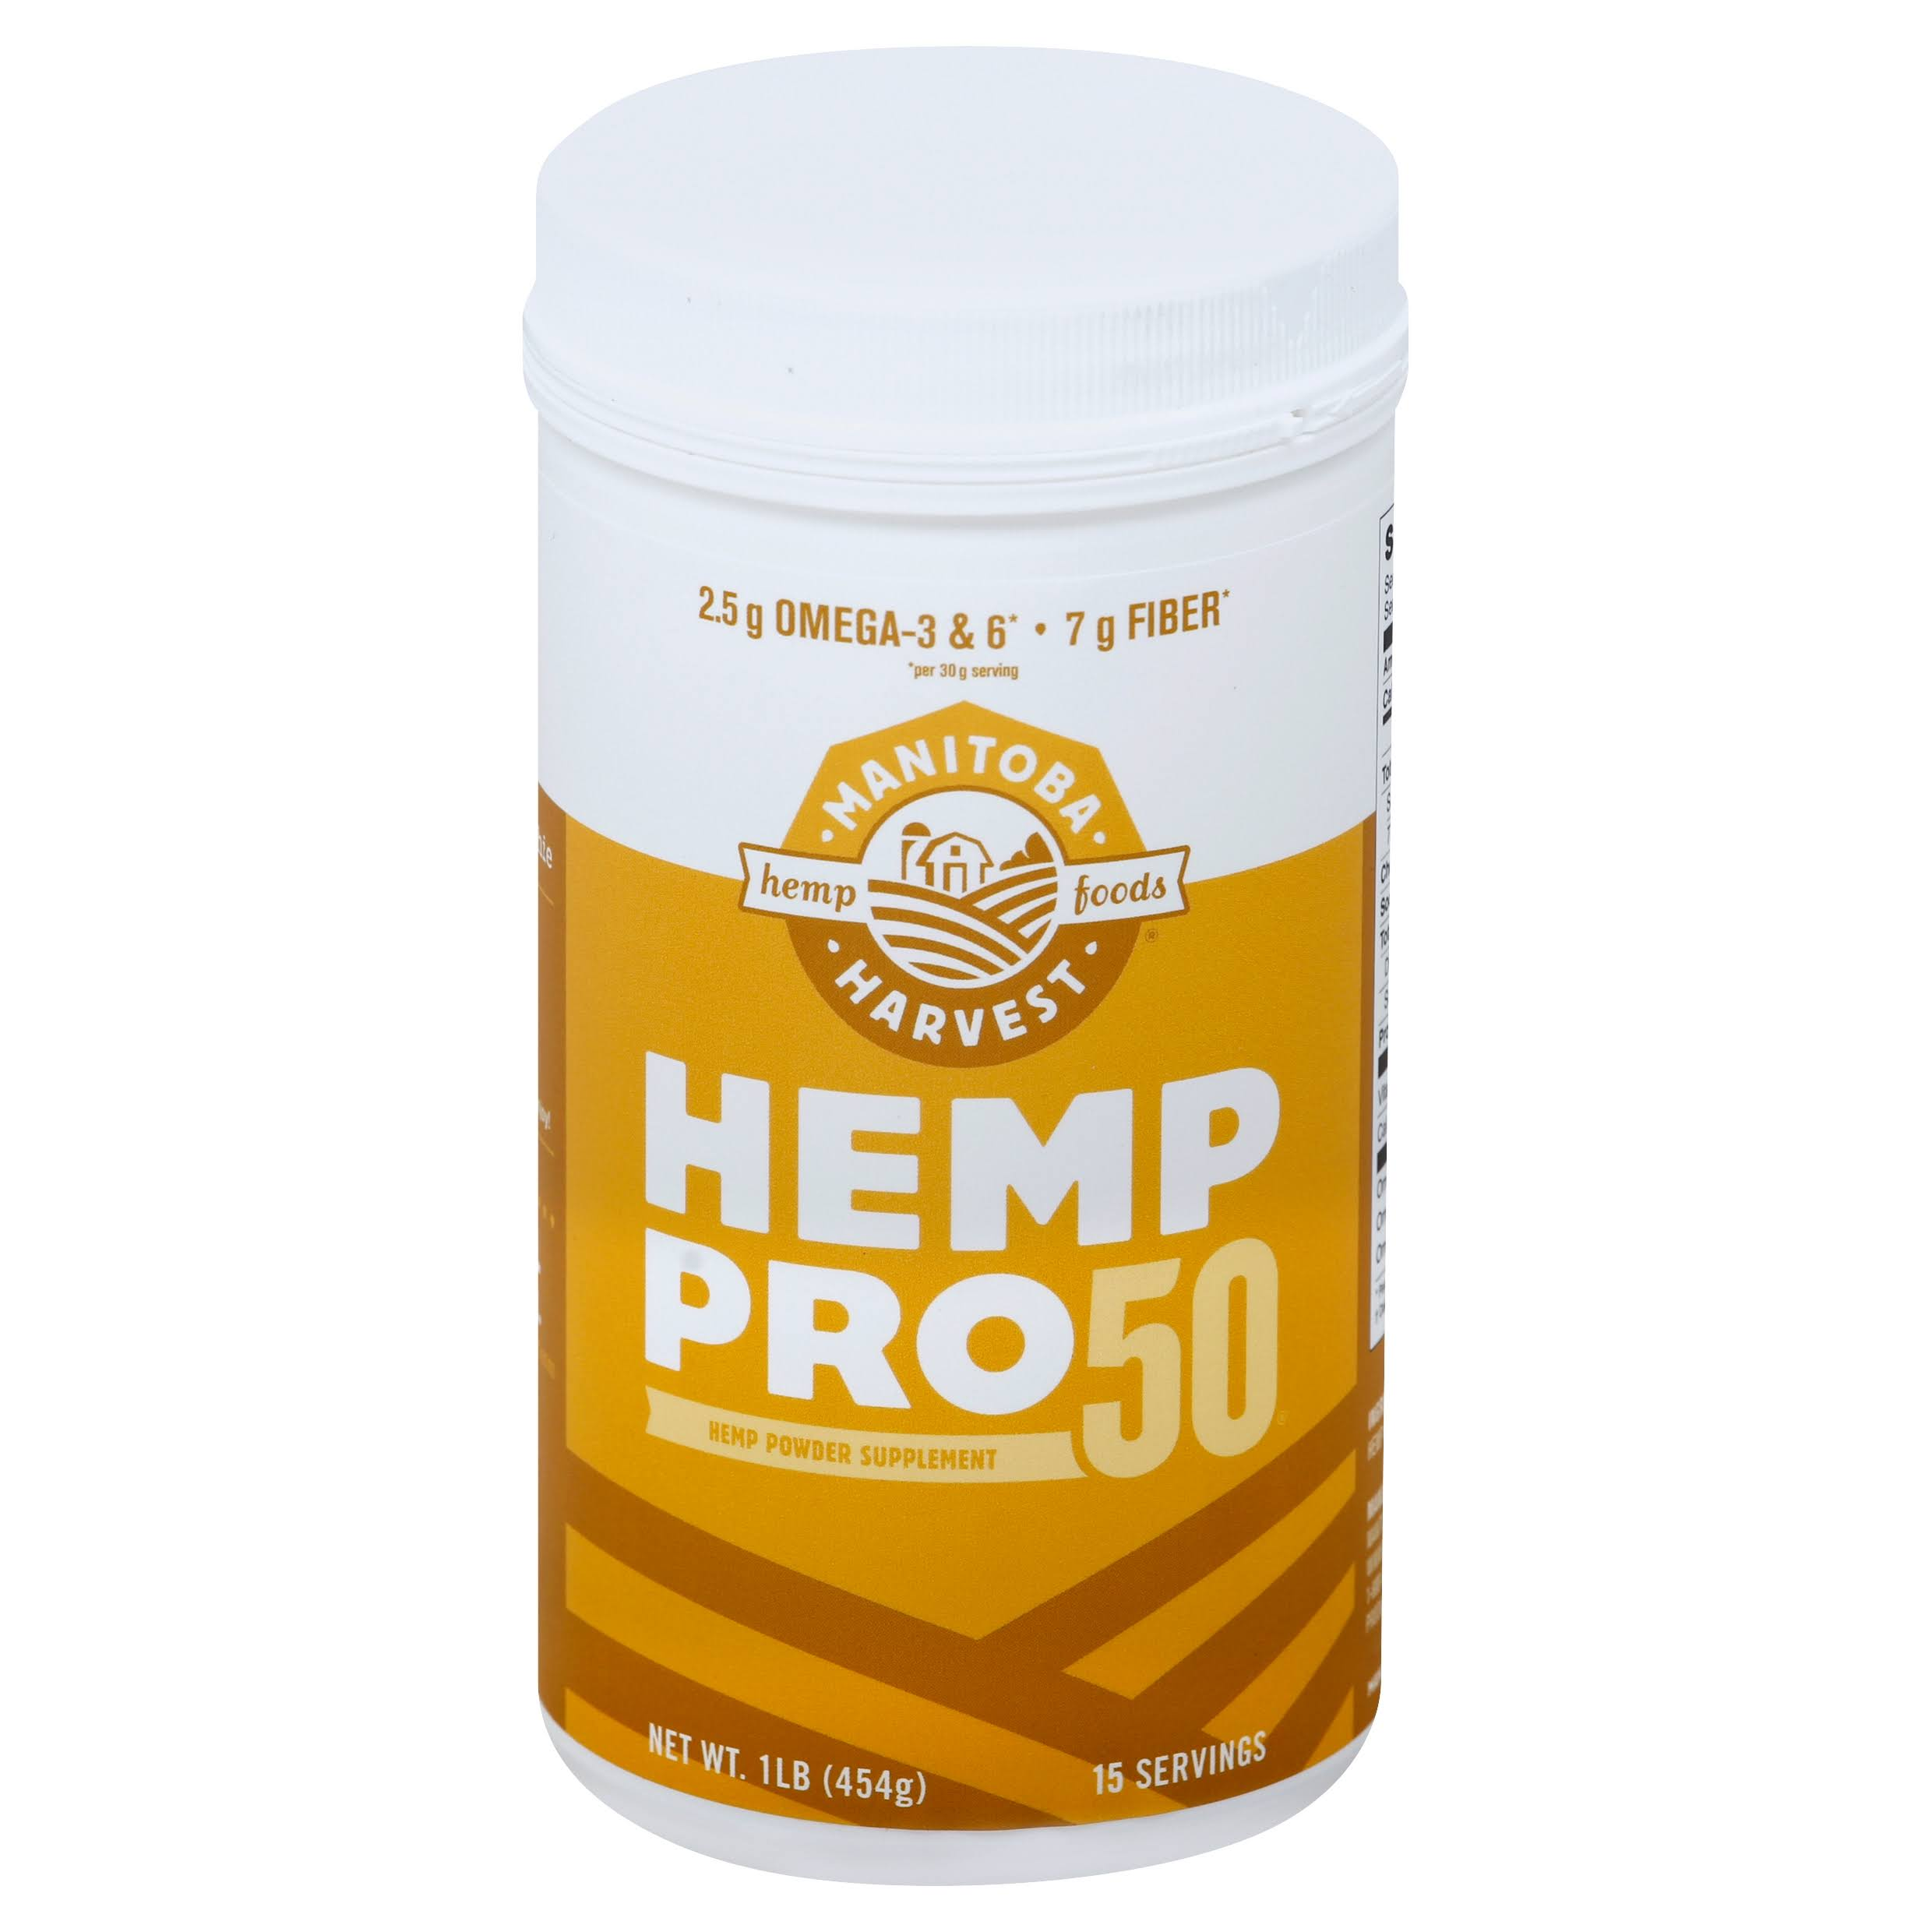 Manitoba Harvest Hemp Pro 50 Protein Supplement - 16oz